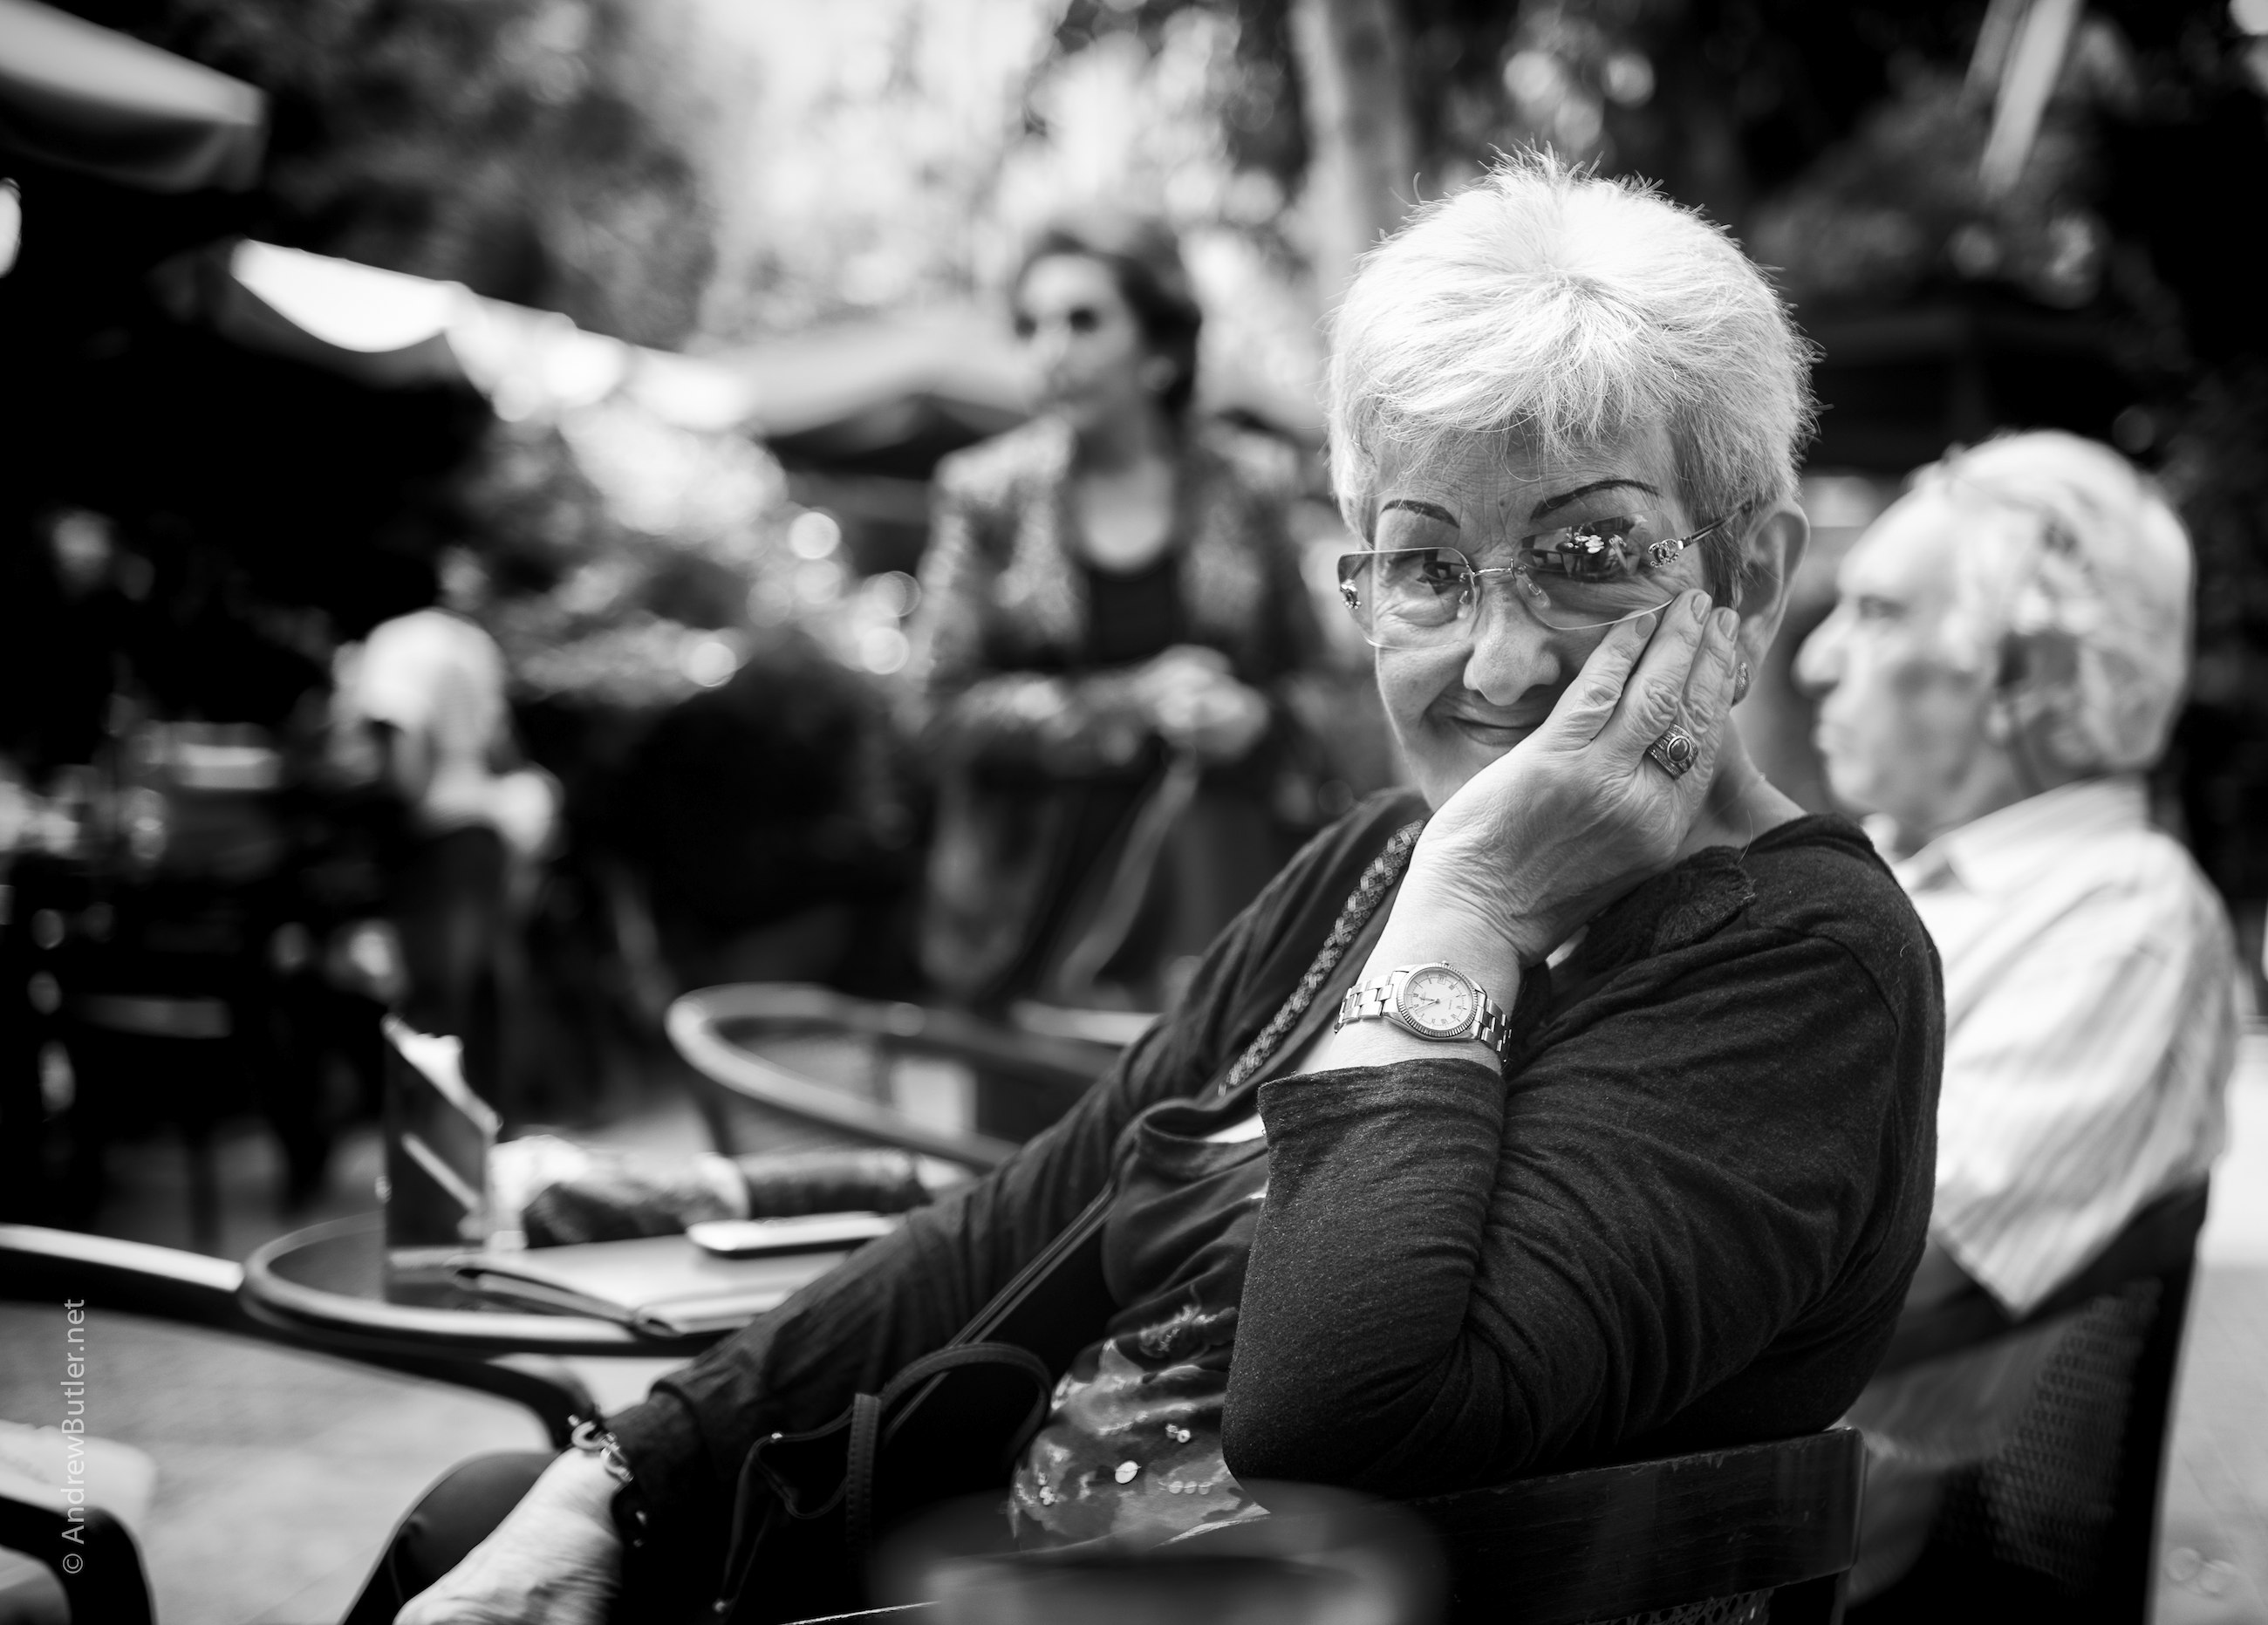 Black and White portrait photograph of Sicilian Woman by Andrew Butler (Exeter)